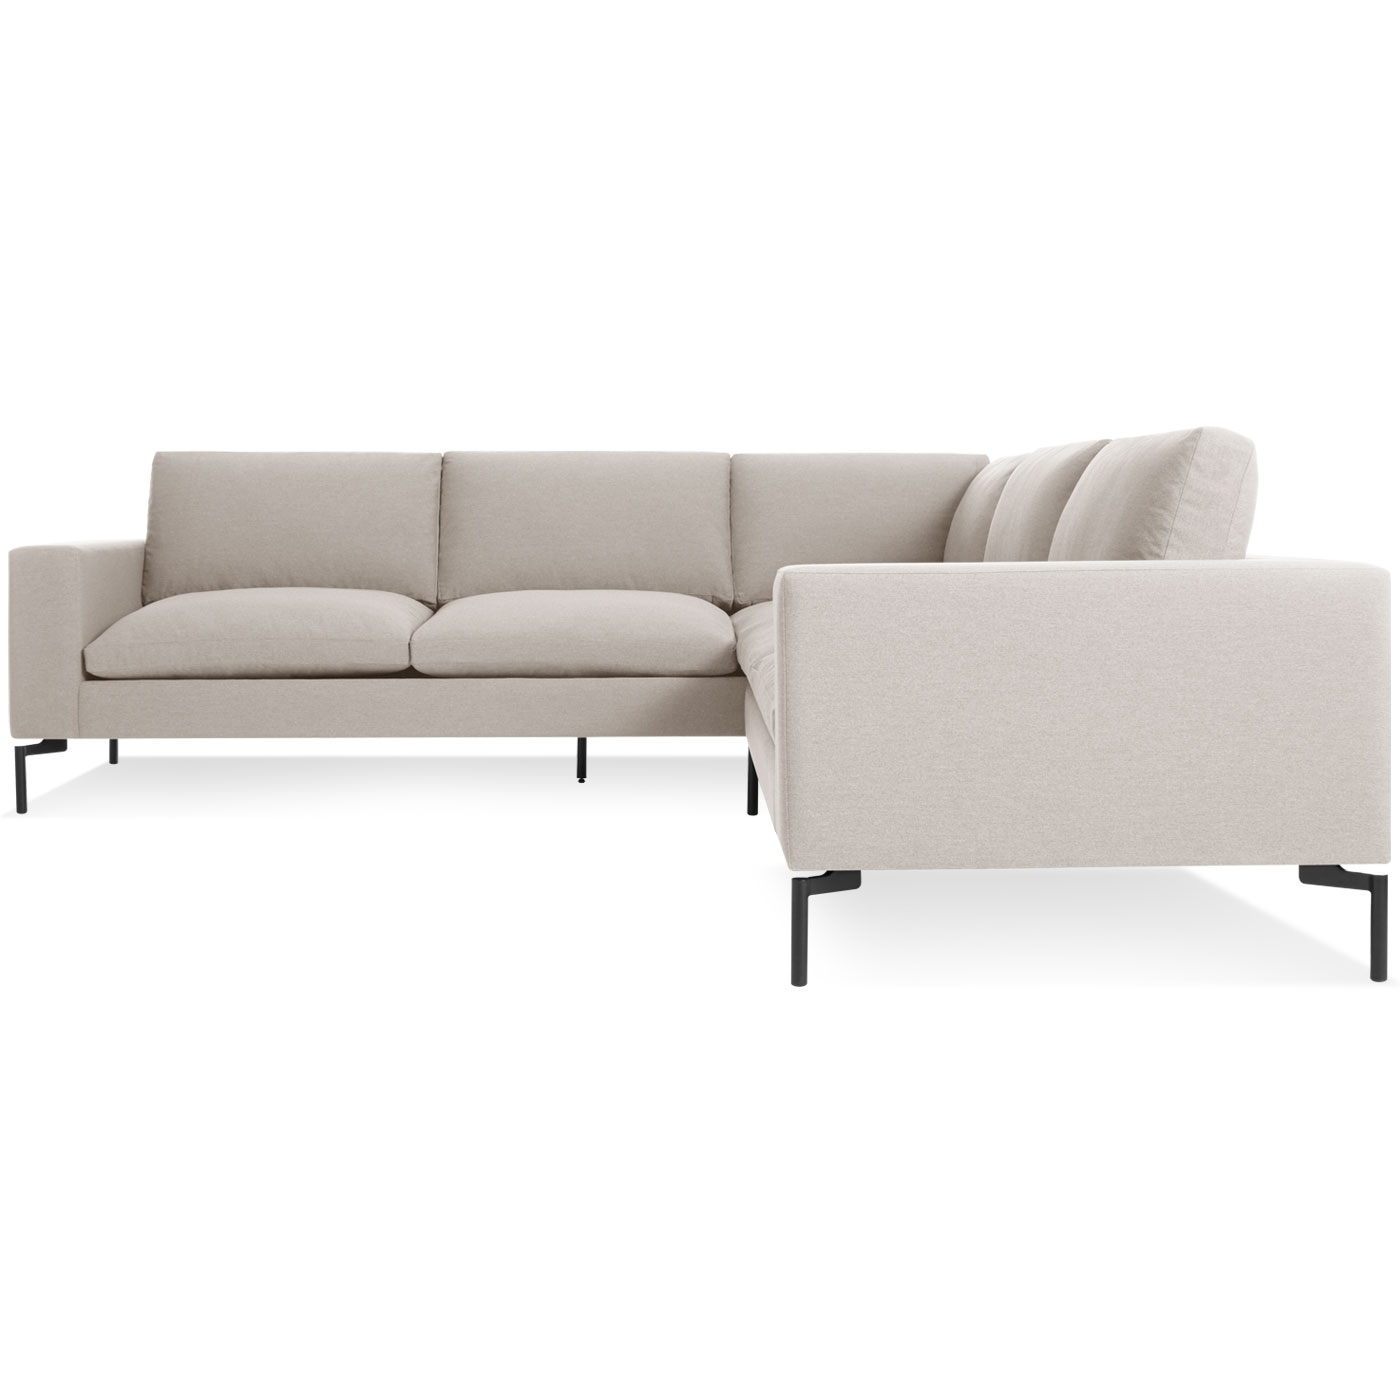 New Standard Small Sectional Sofa Modern Sofas Blu Dot Throughout Small Sectional Sofa (Image 5 of 15)